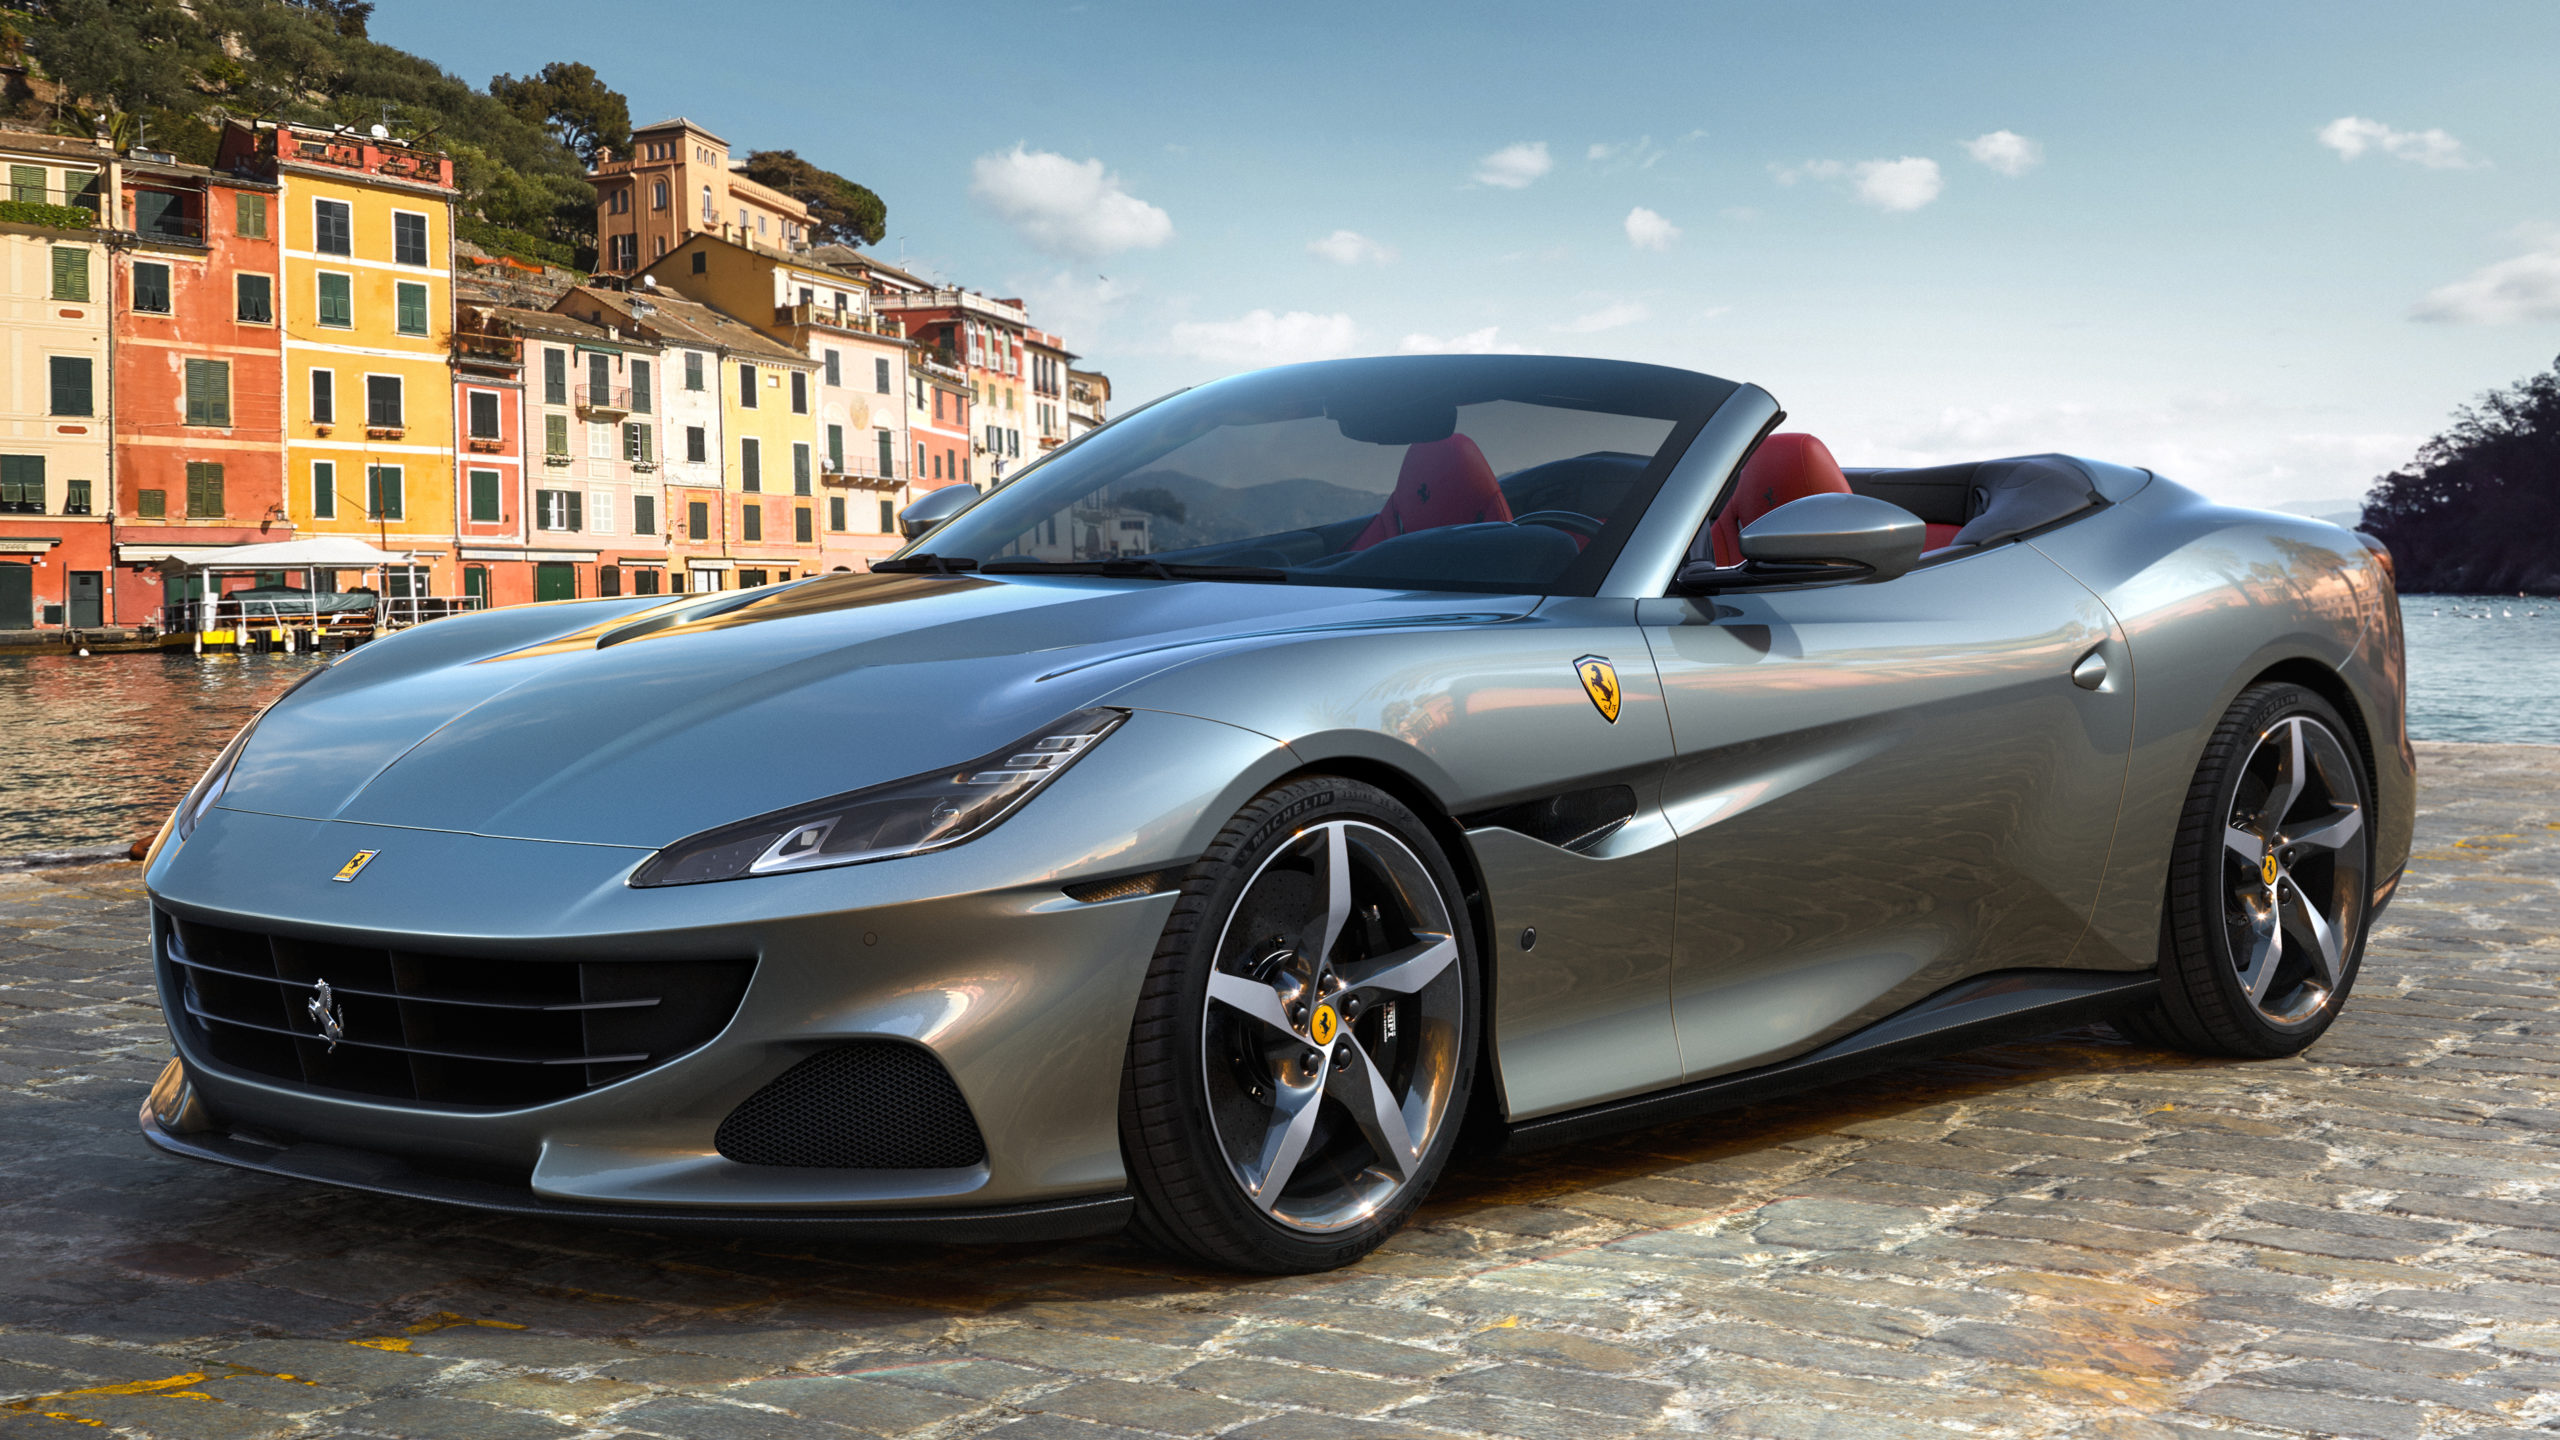 Ferrari Portofino M, the Maranello spider is now